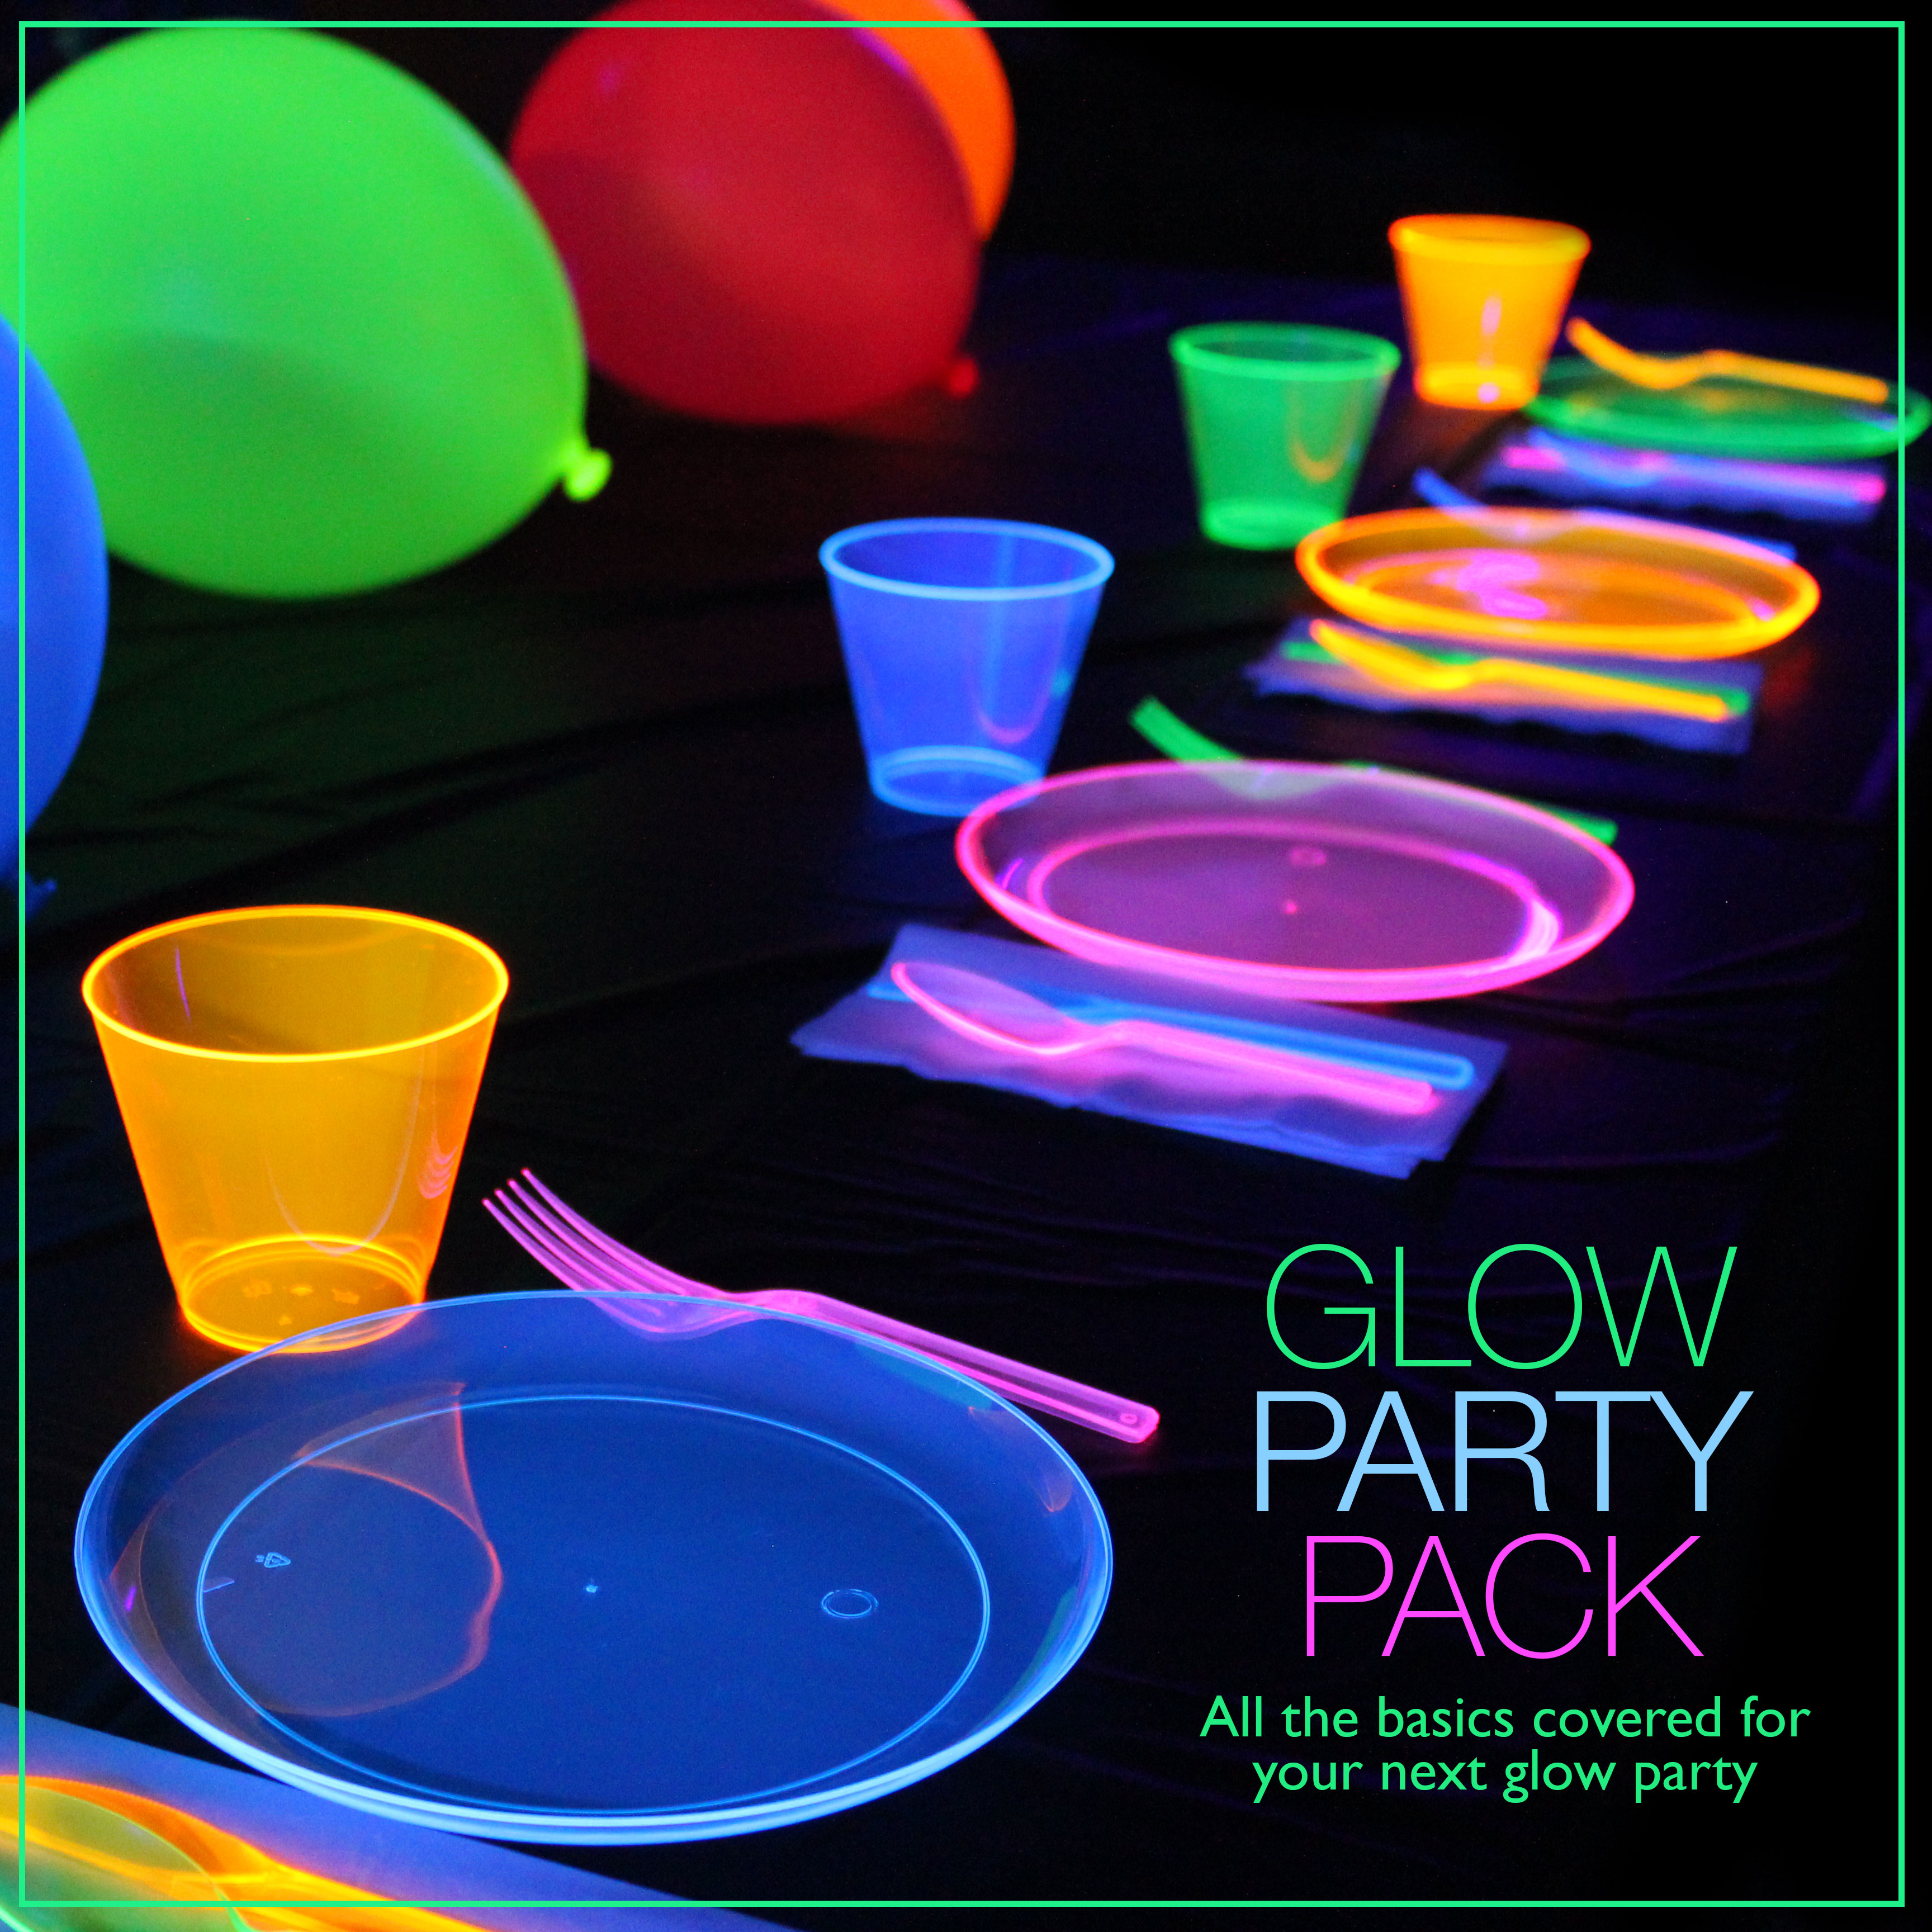 glow party pack glow in the dark party ideas. Black Bedroom Furniture Sets. Home Design Ideas